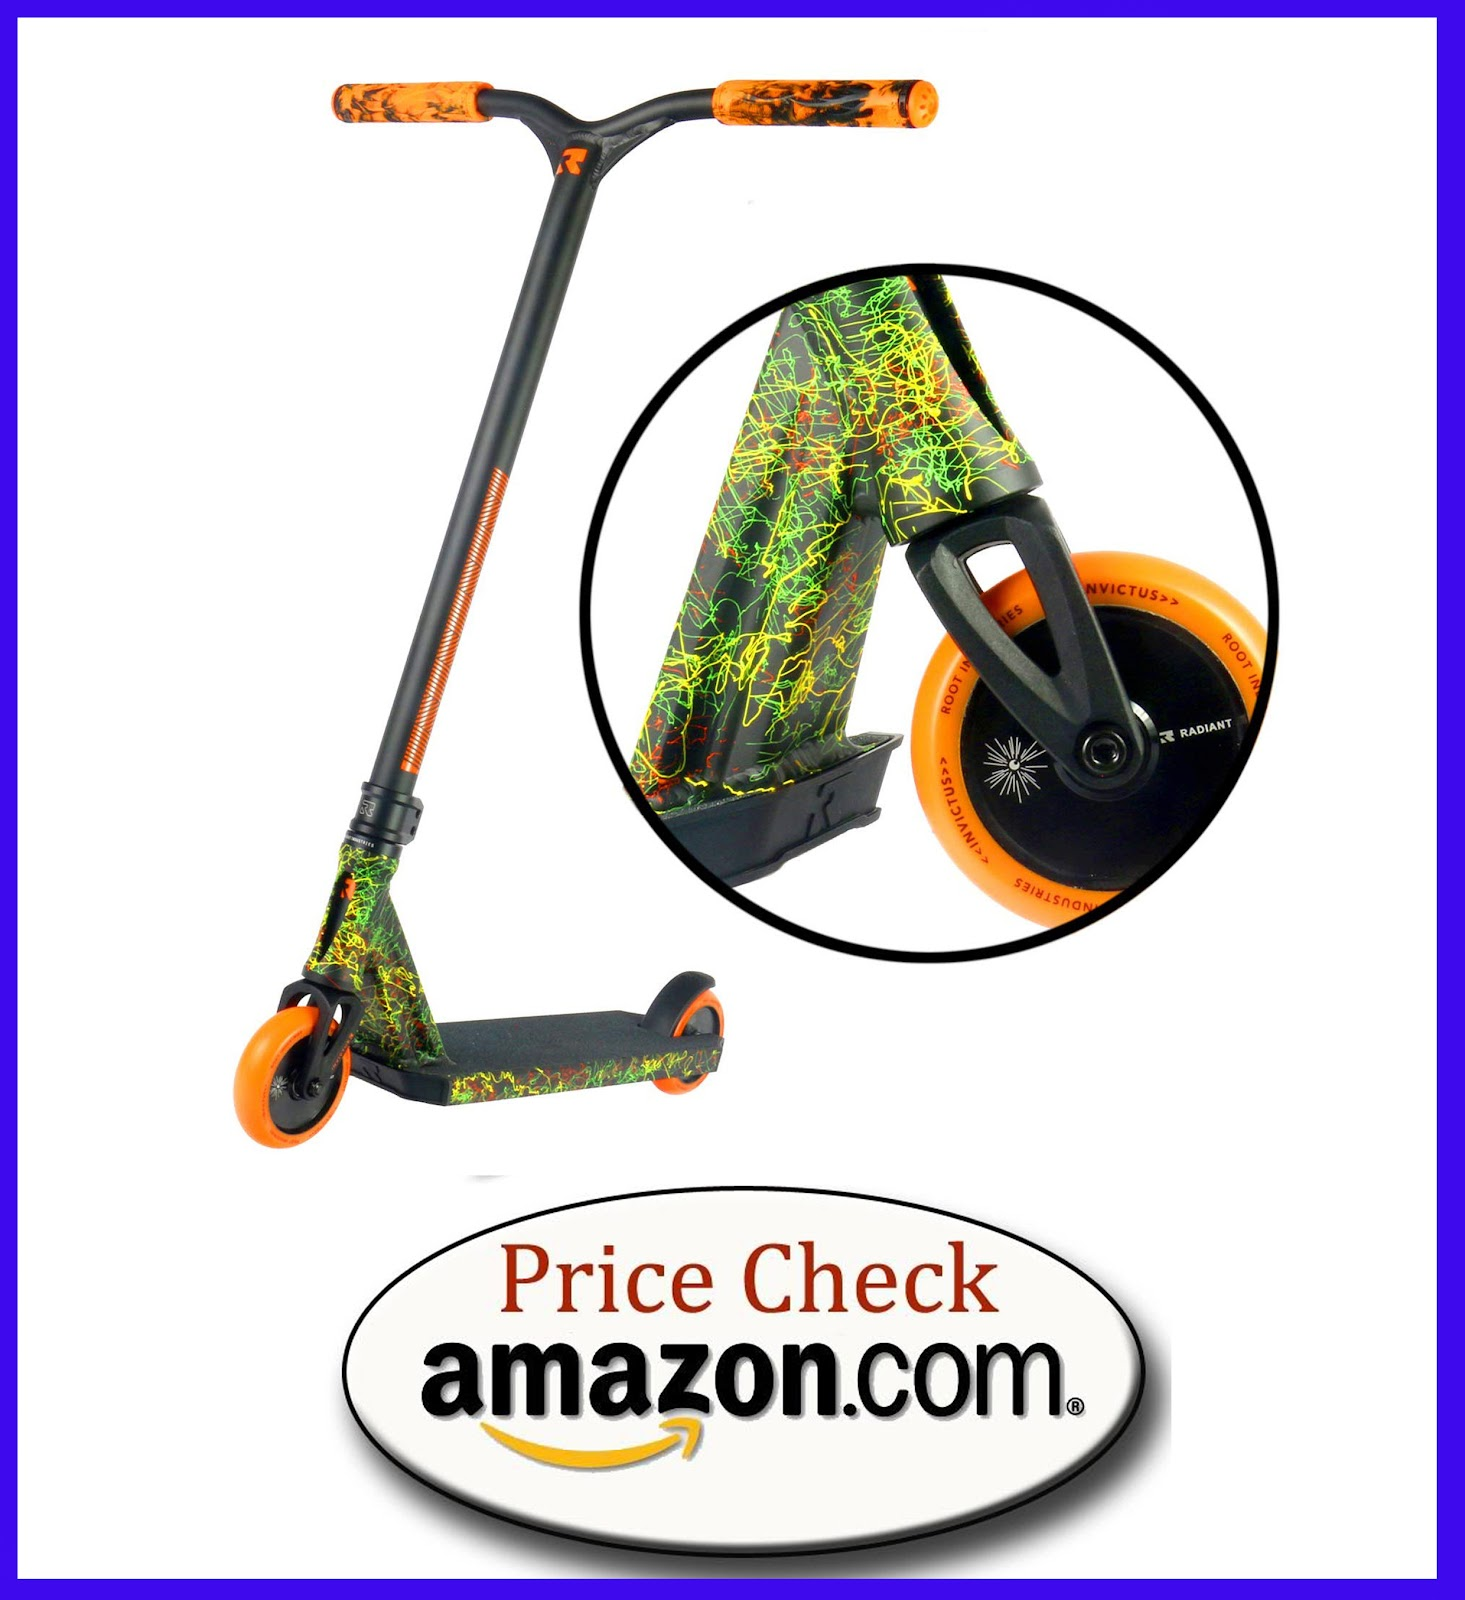 The Top 10 Cheap Stunt Scooter 2020